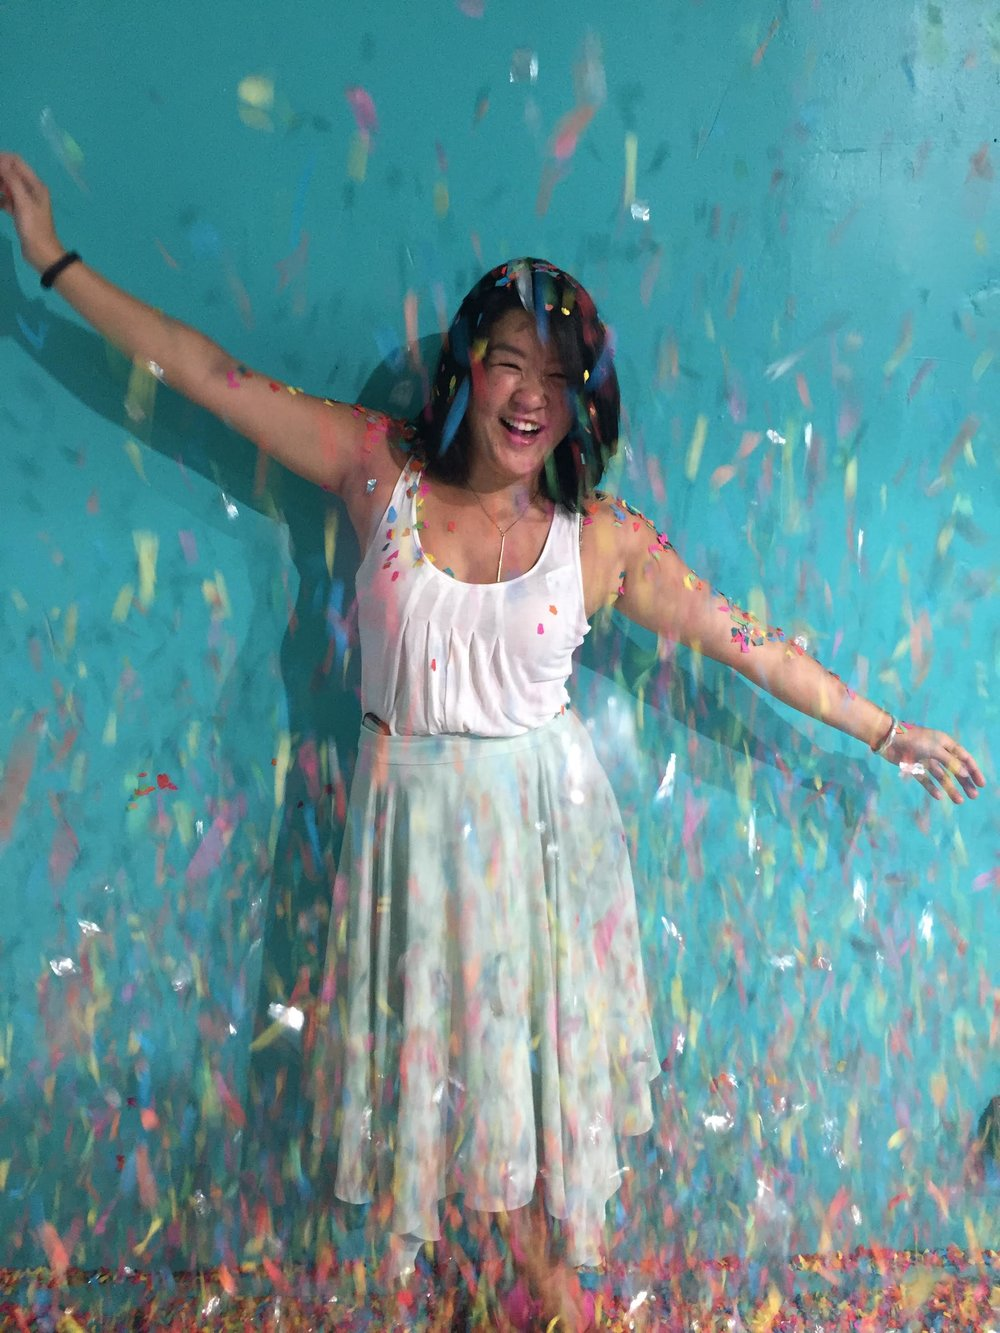 ColorFactoryConfetti.jpg